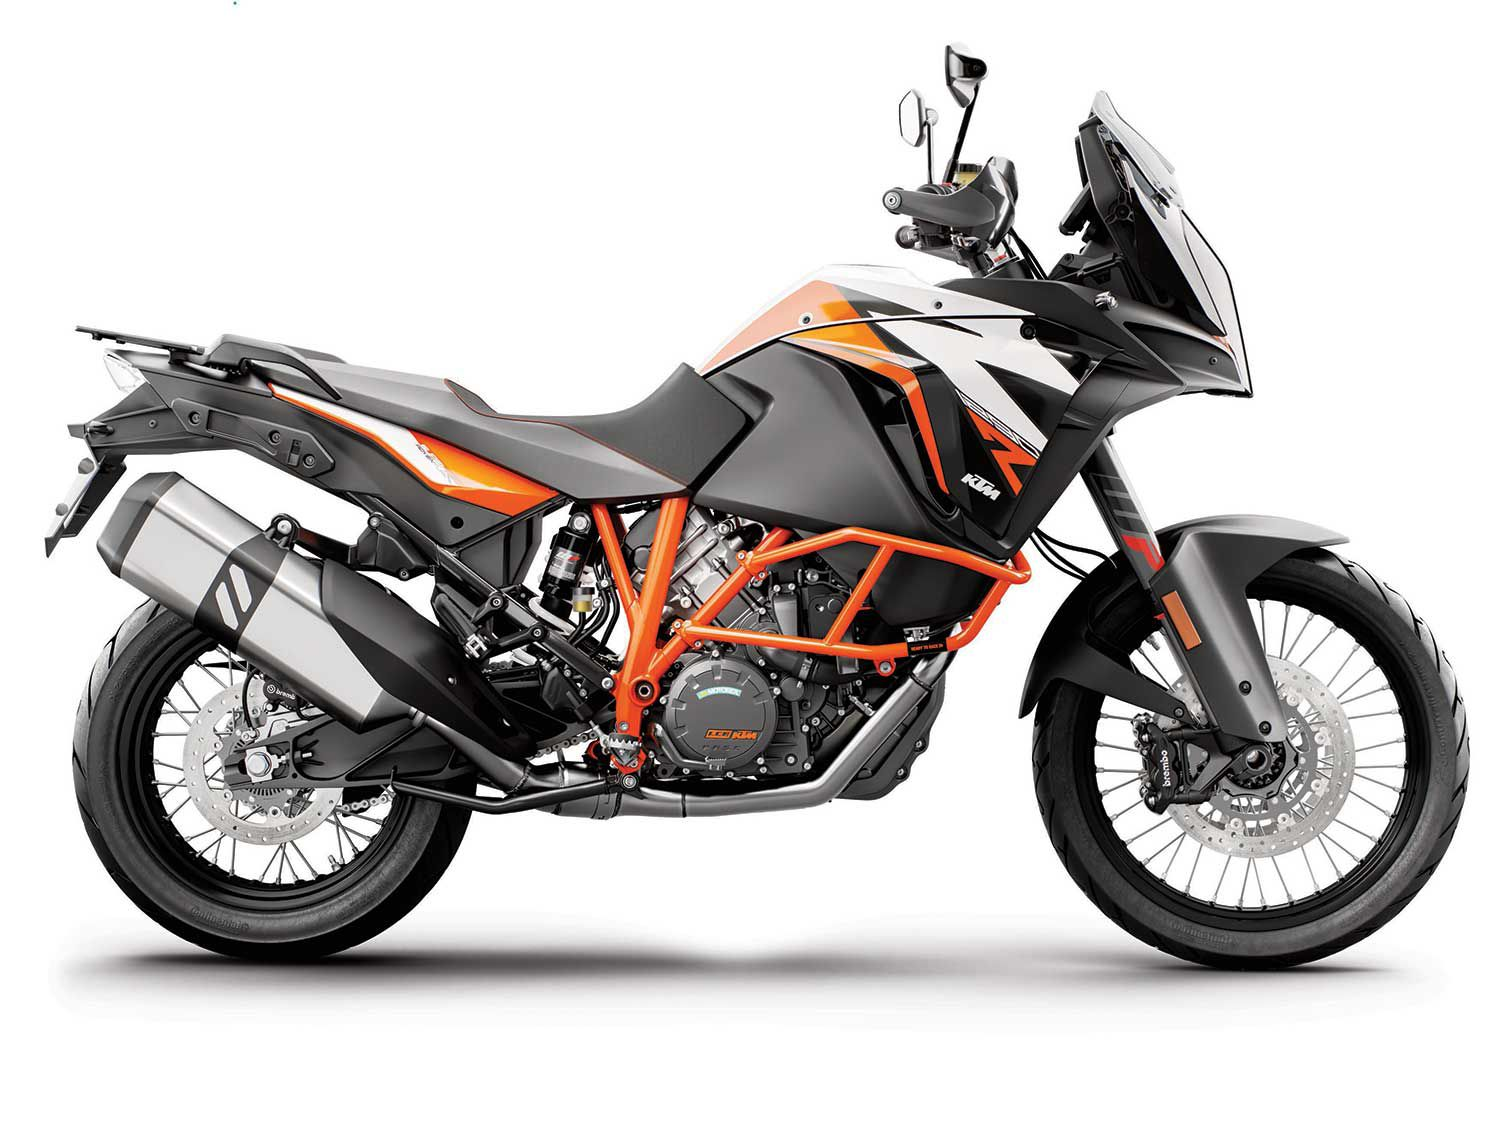 The KTM 1290 Super Adventure R has power and performance in excess, and is a bike that will turn heads.